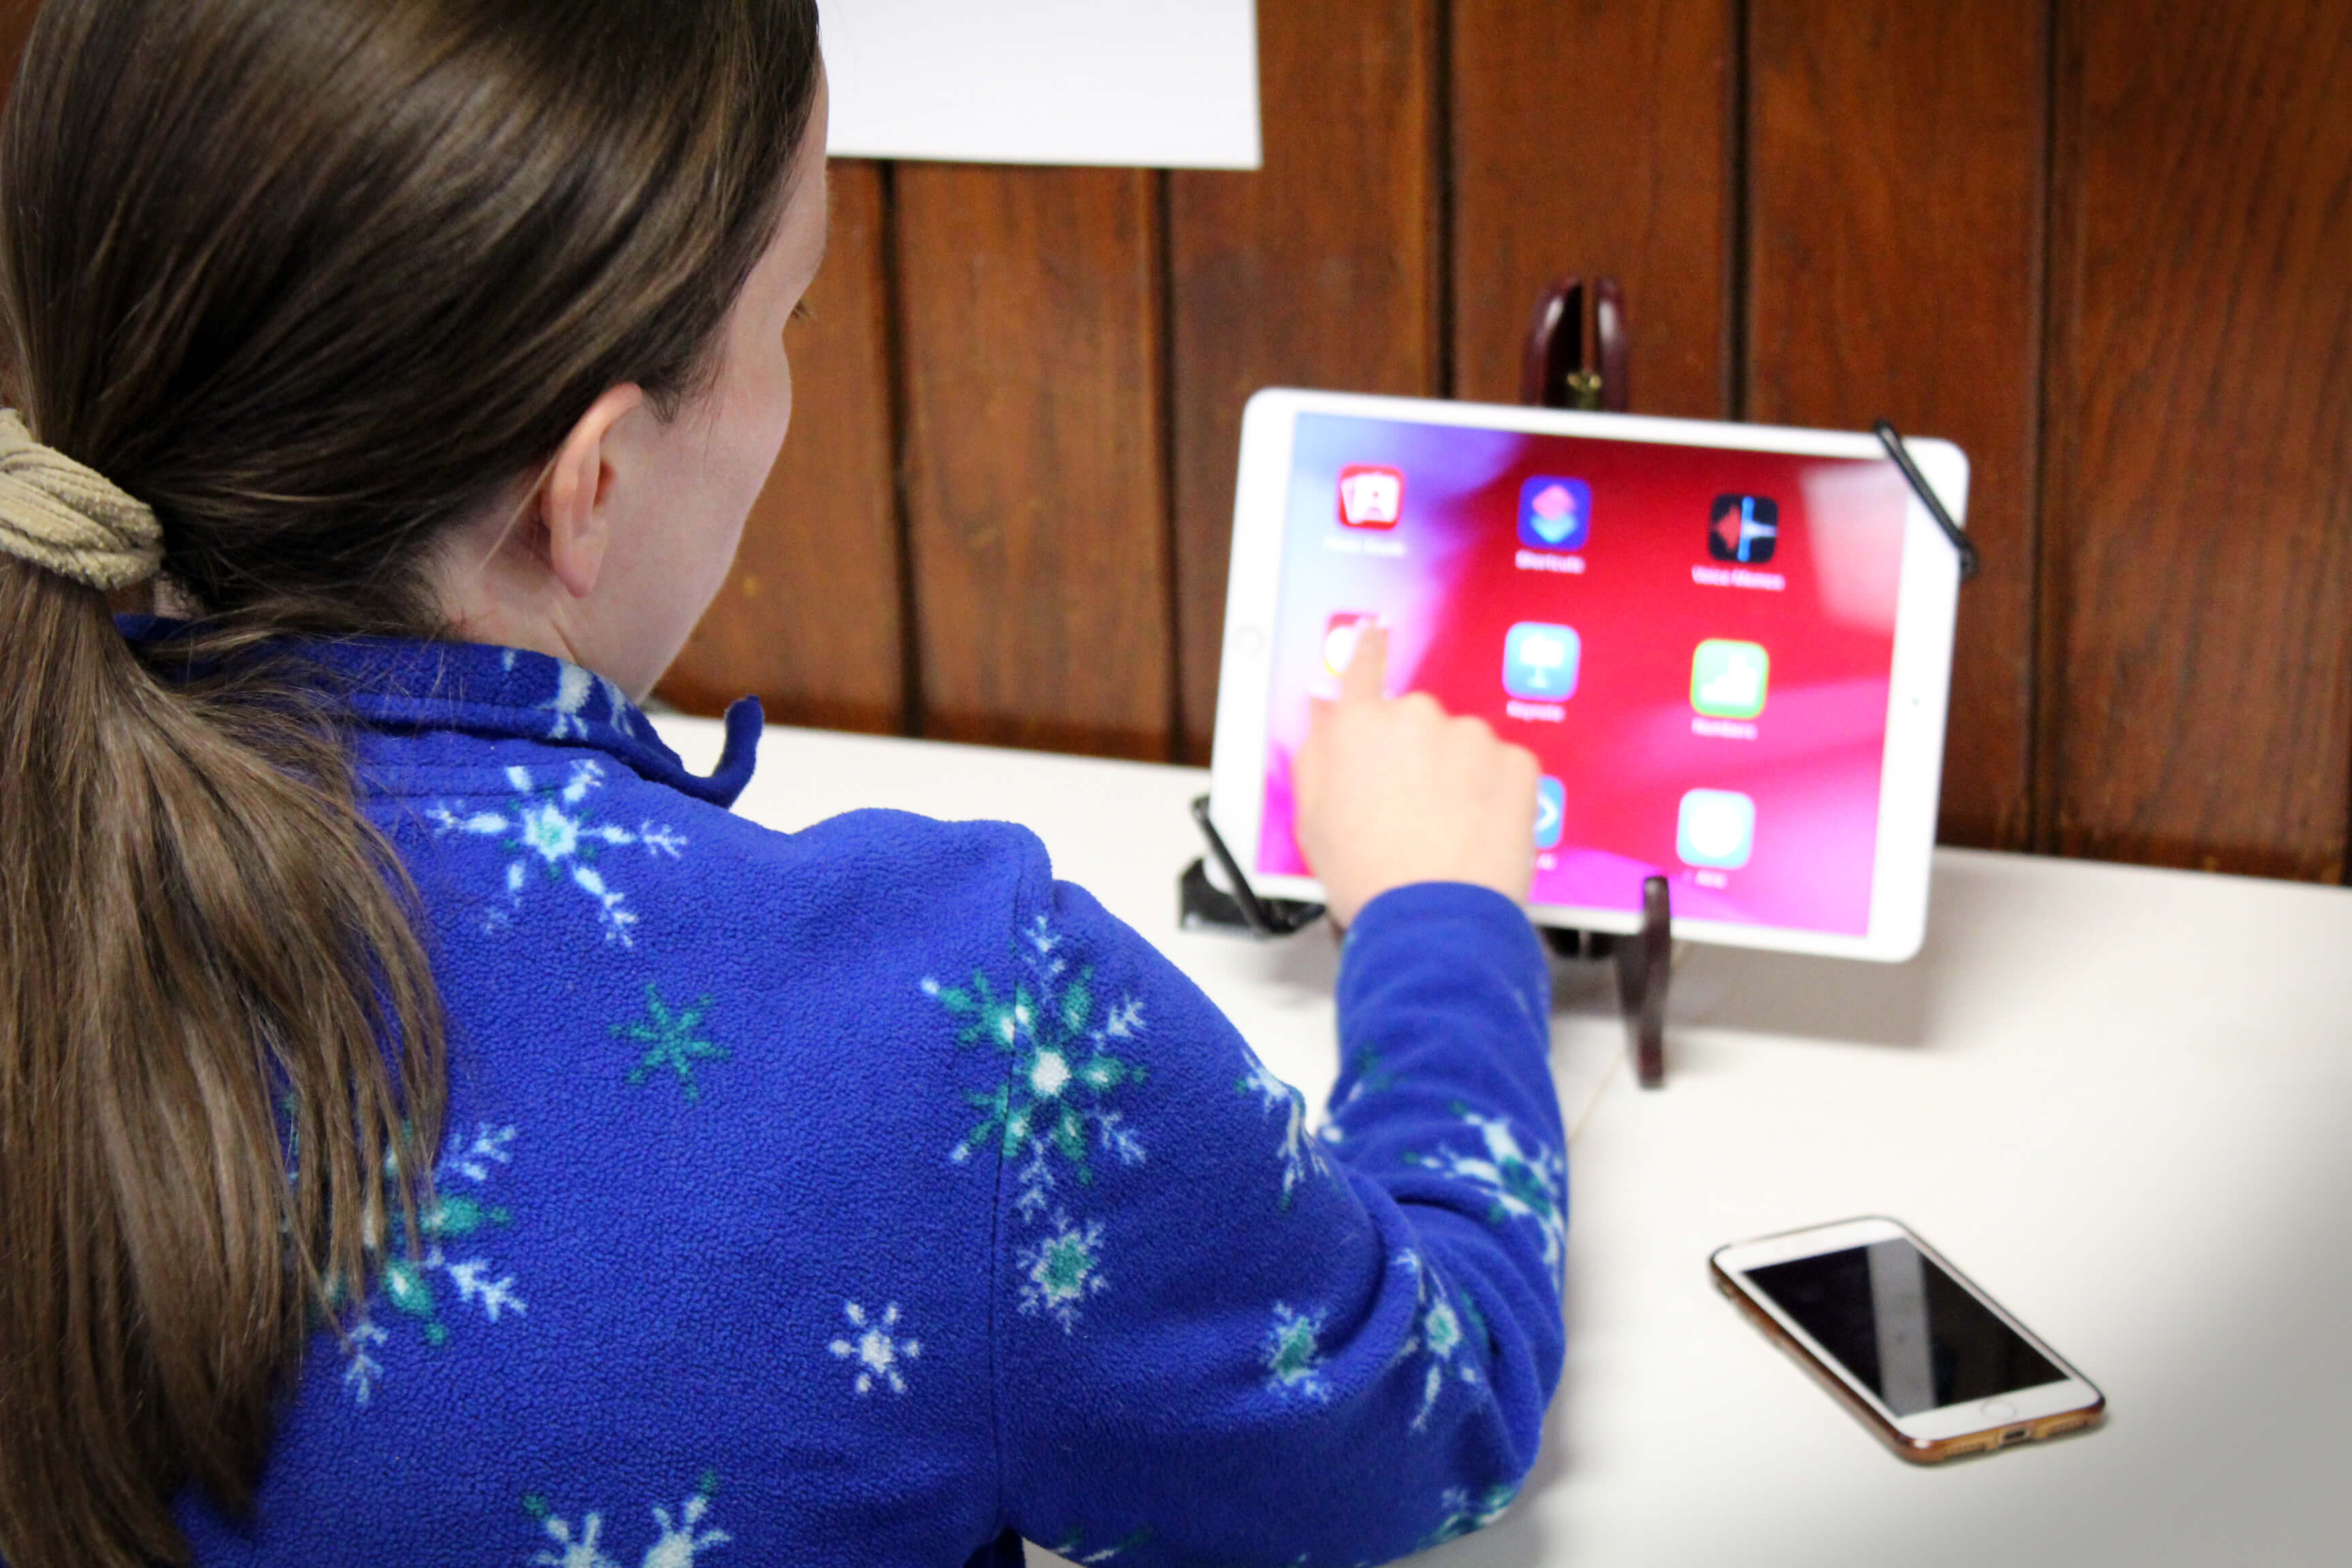 A woman explores the built-in magnifier on an iPad at the Carroll Center's assistive device lab.